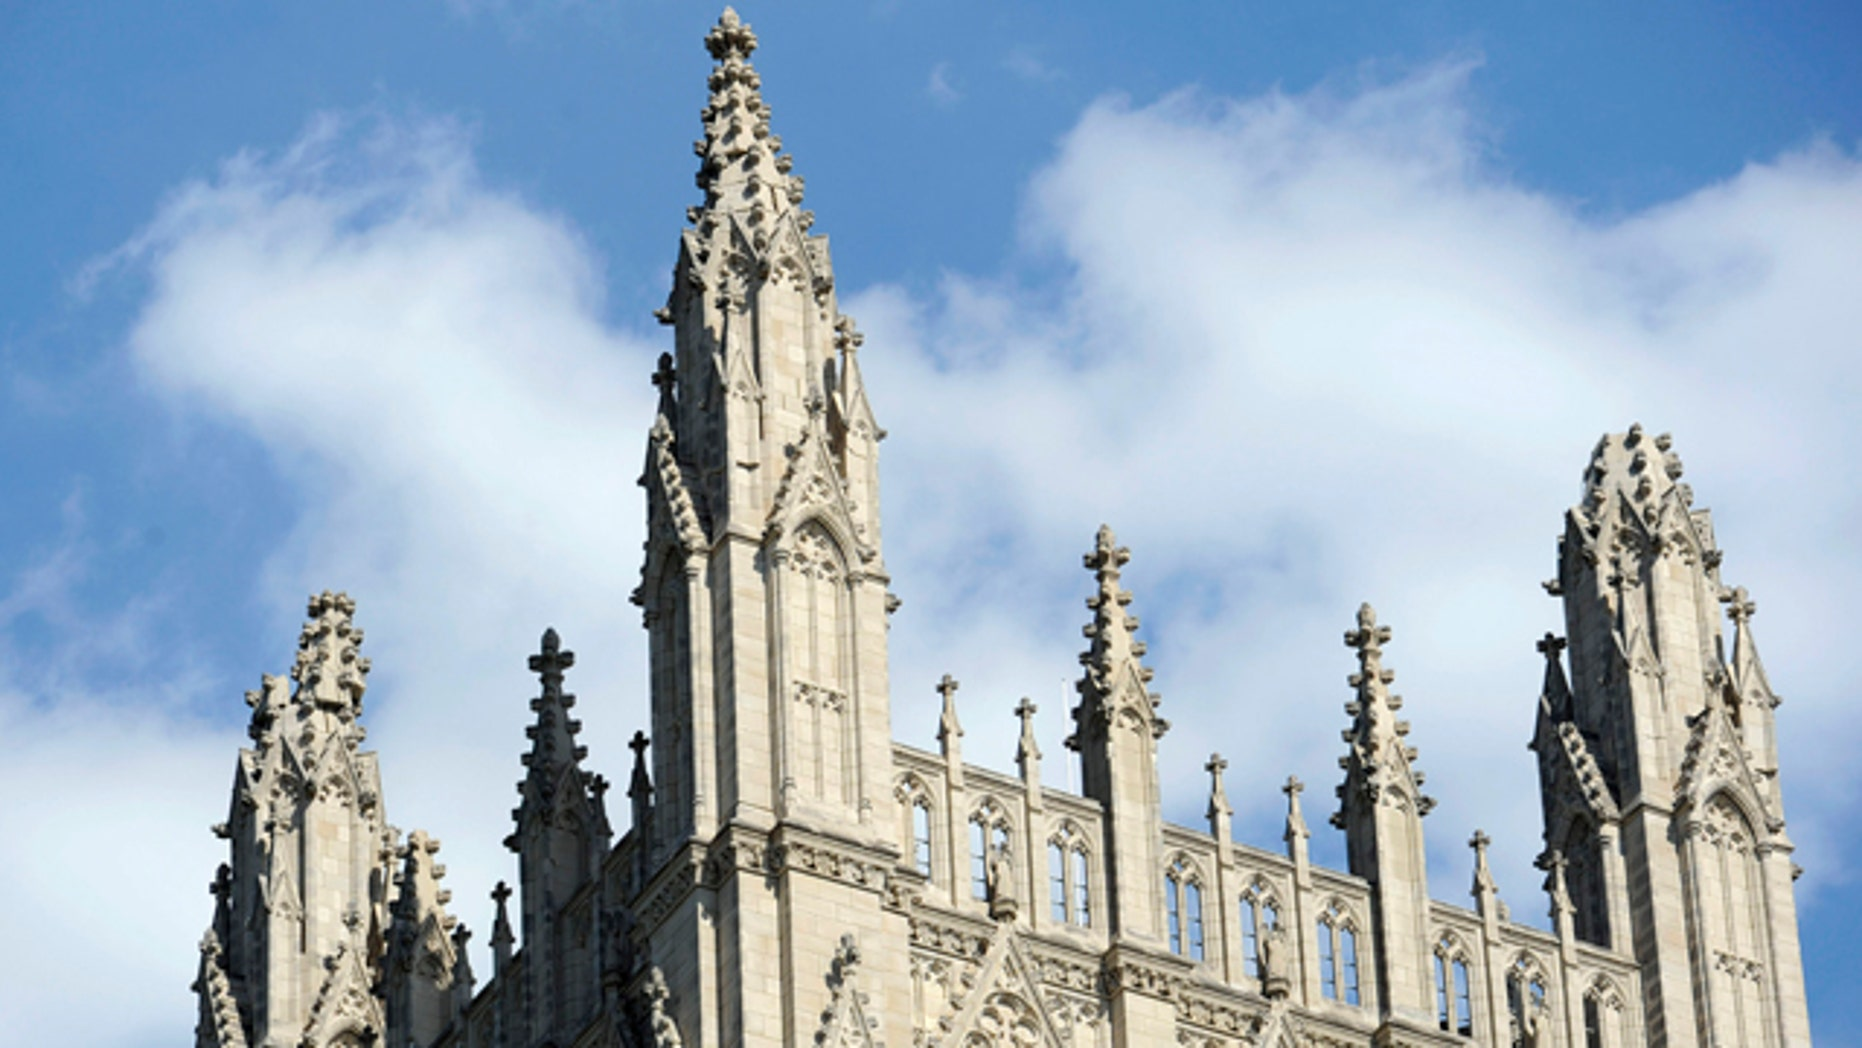 Aug. 23: A spire, right, on the National Cathedral is damaged after an earthquake in Washington area.